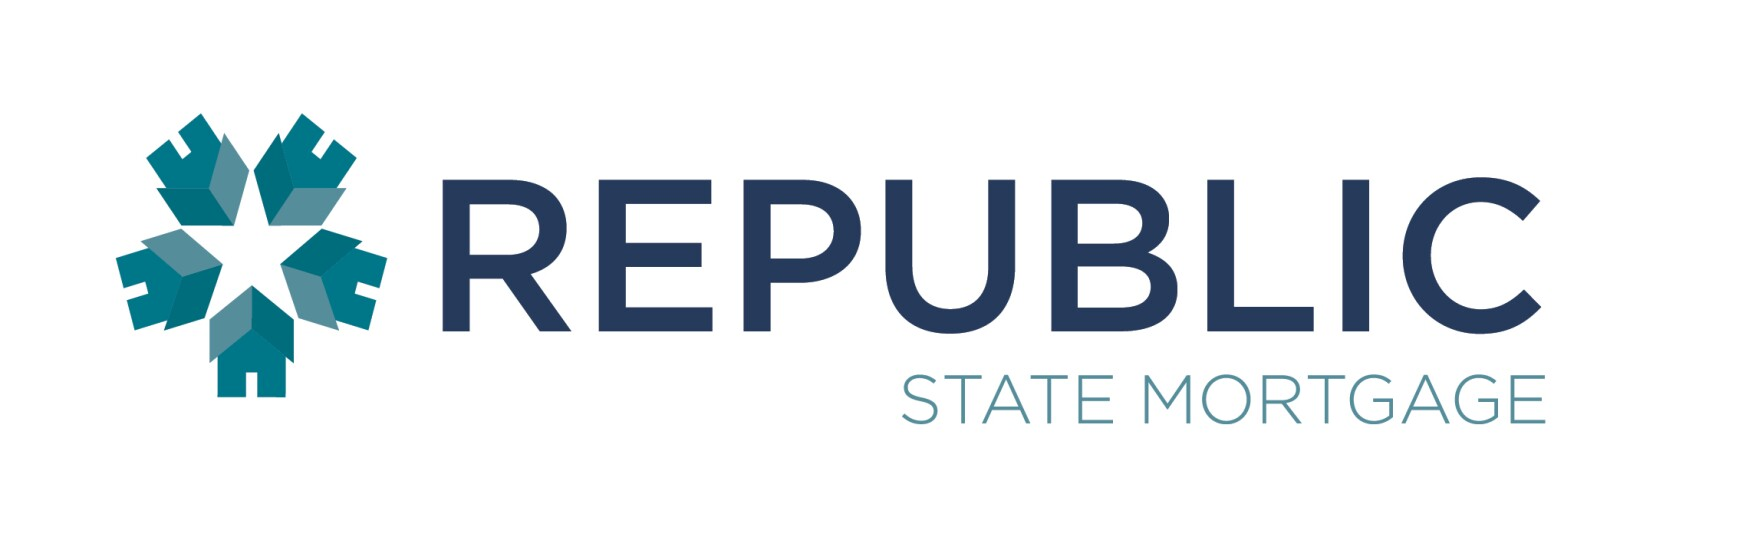 Republic State Mortgage.jpg